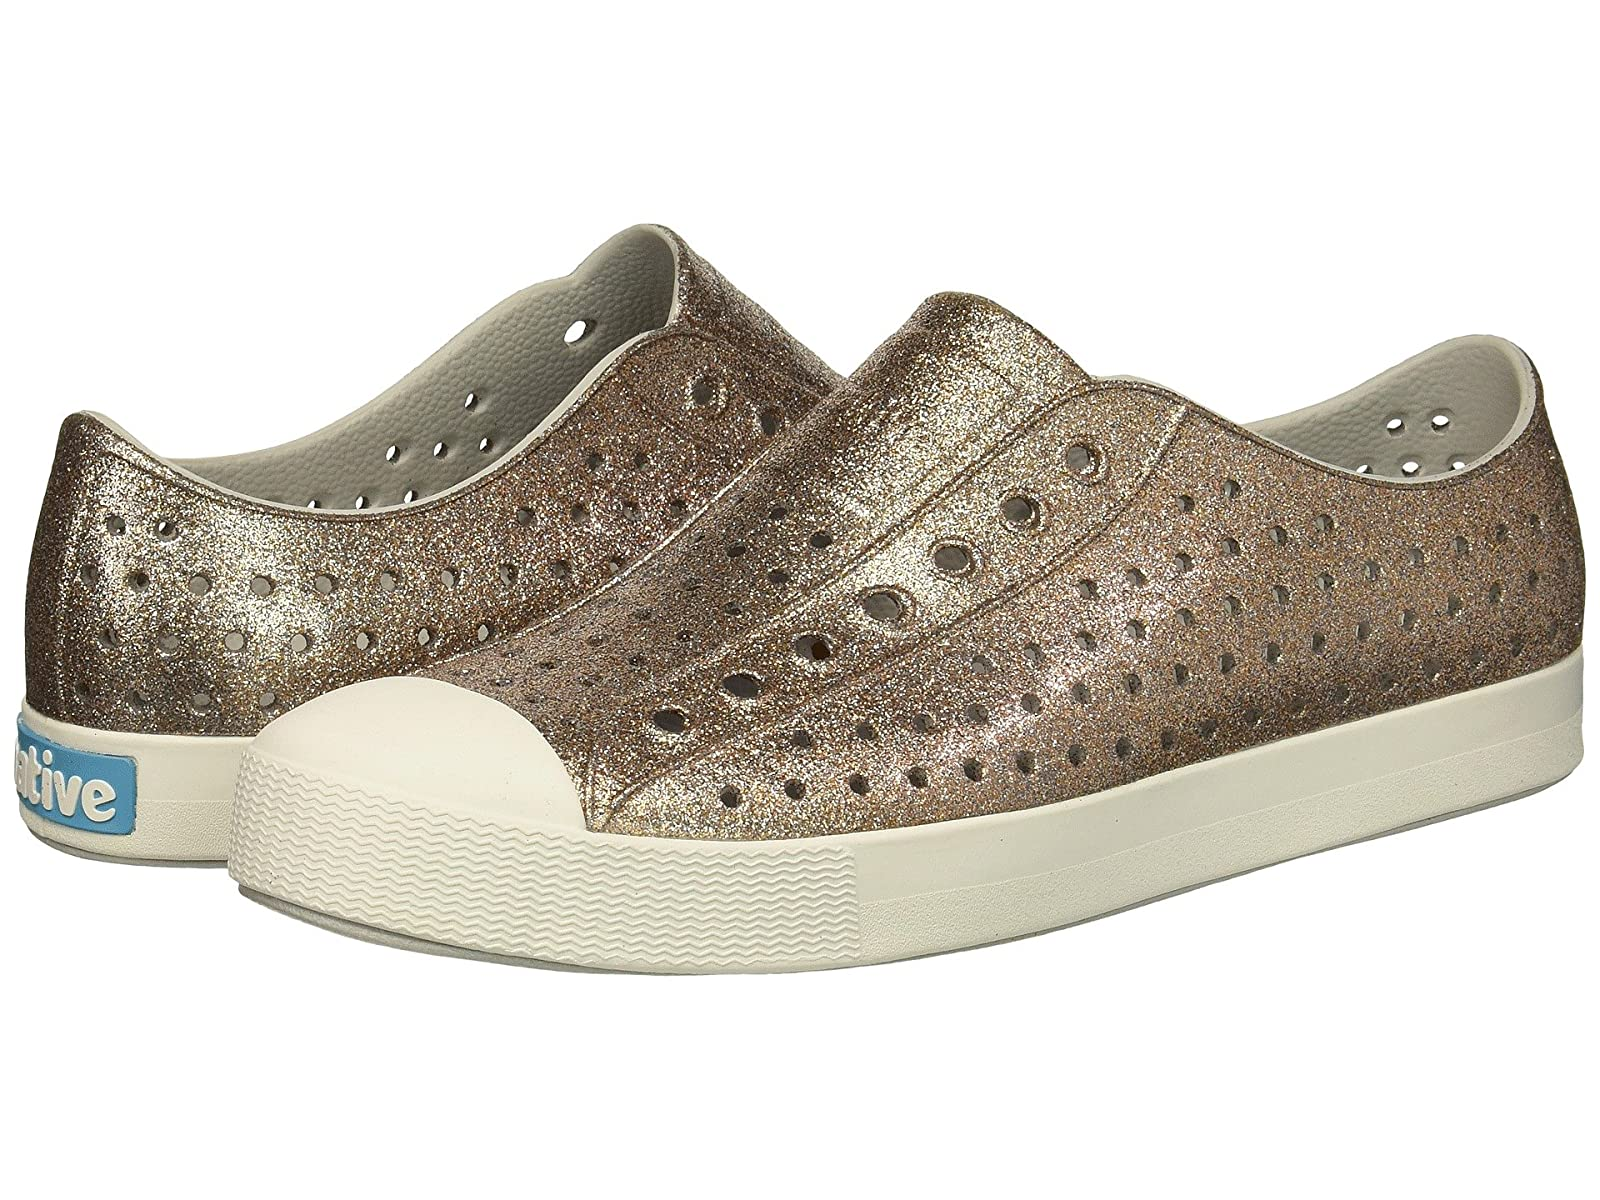 Mr/Ms:Native Selling Shoes Jefferson Bling:Good Selling Mr/Ms:Native All over the World 4f967d